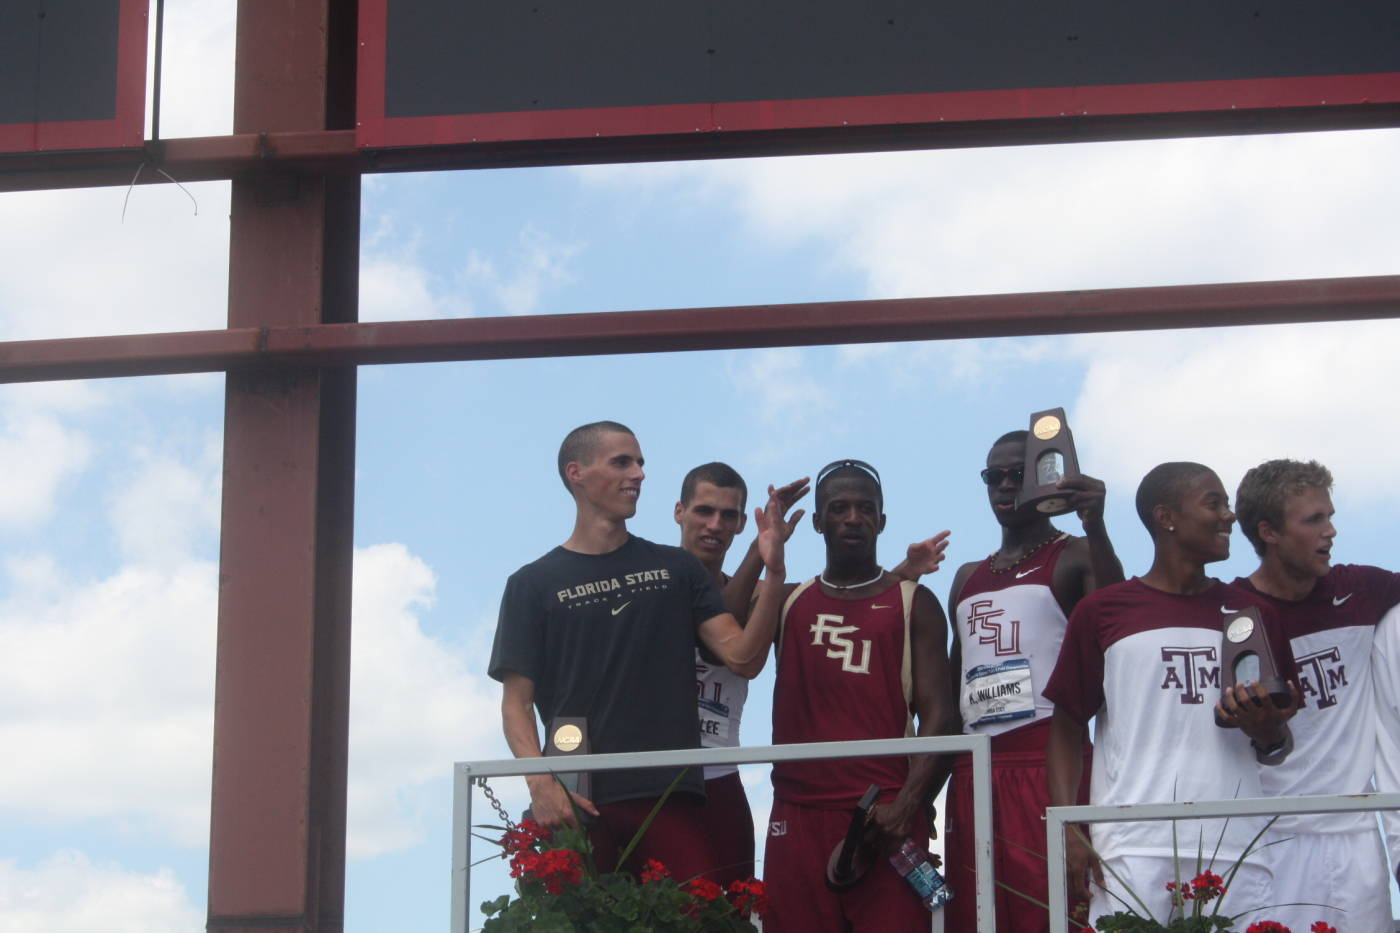 4x400 m relay champions on the awards stand.